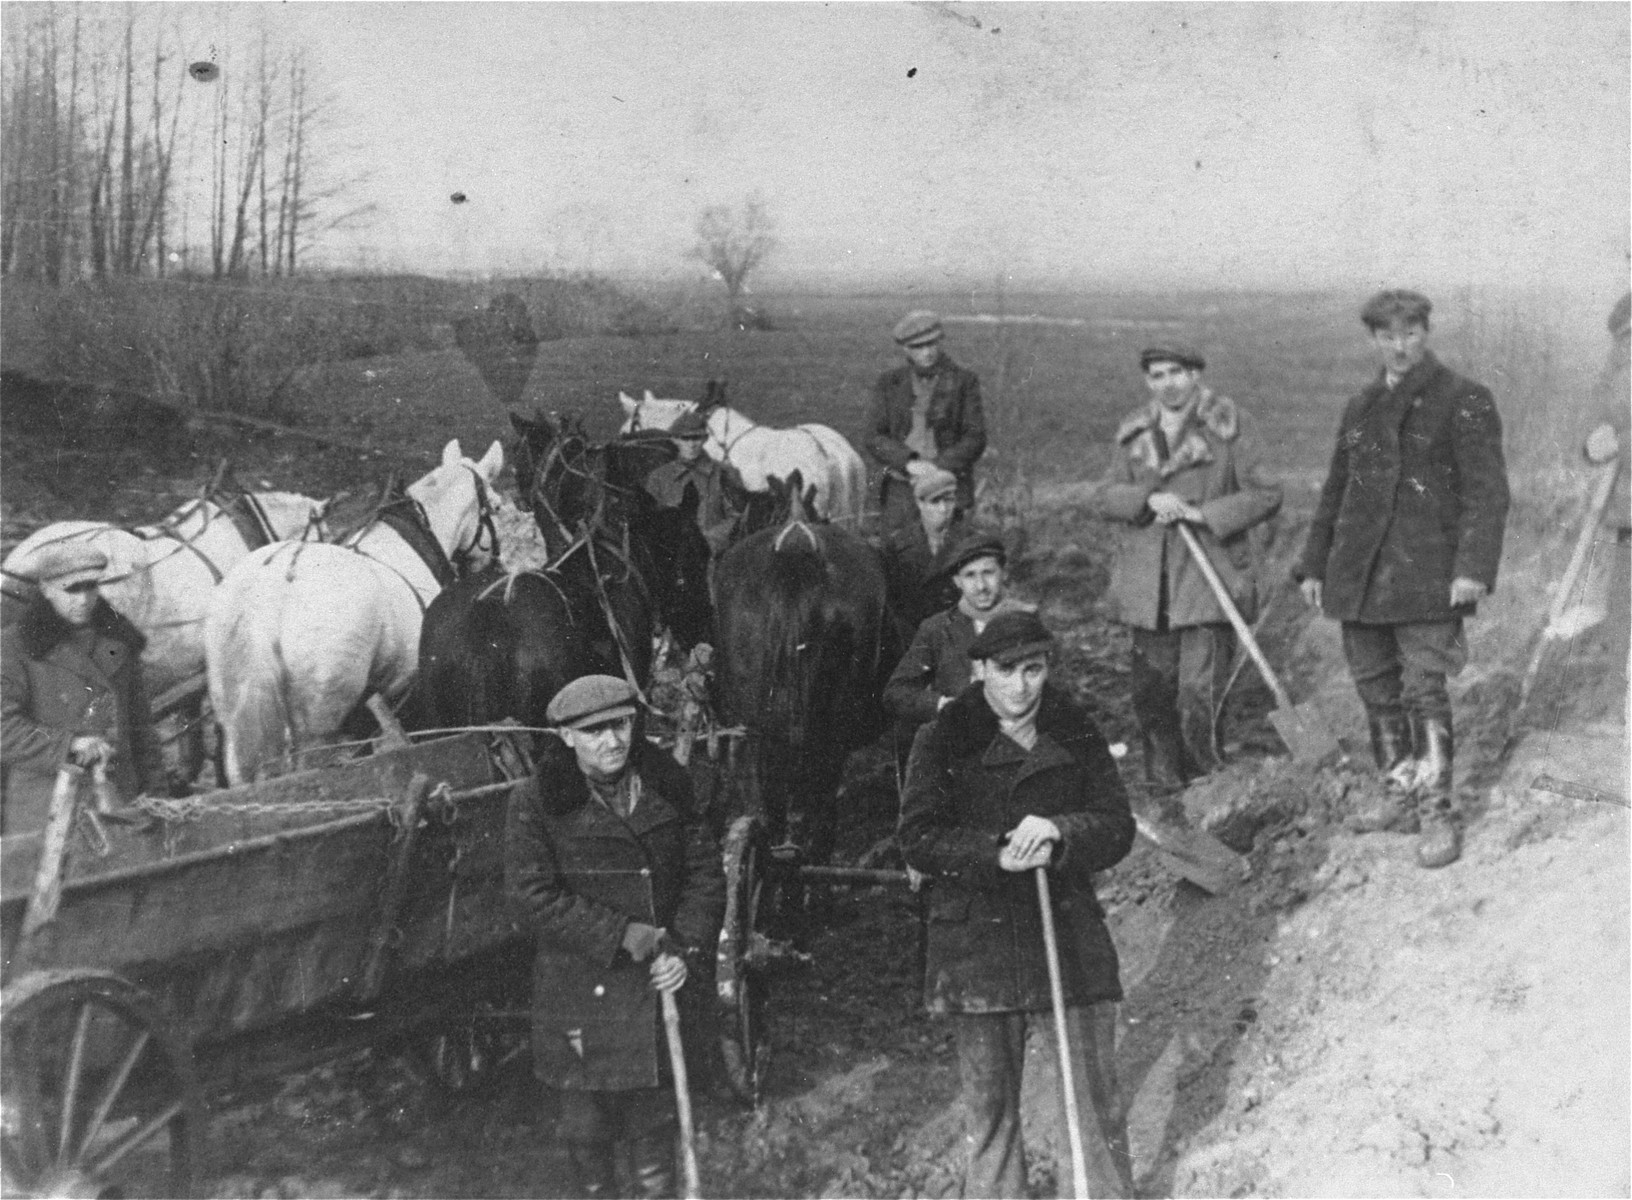 Jewish men from the Kozienice ghetto at forced labor draining a swamp in the nearby village of Wolka.  They are working for the Gorczycki firm who was building a canal.  Pictured on the far right is the Polish supervisor Rembalski.